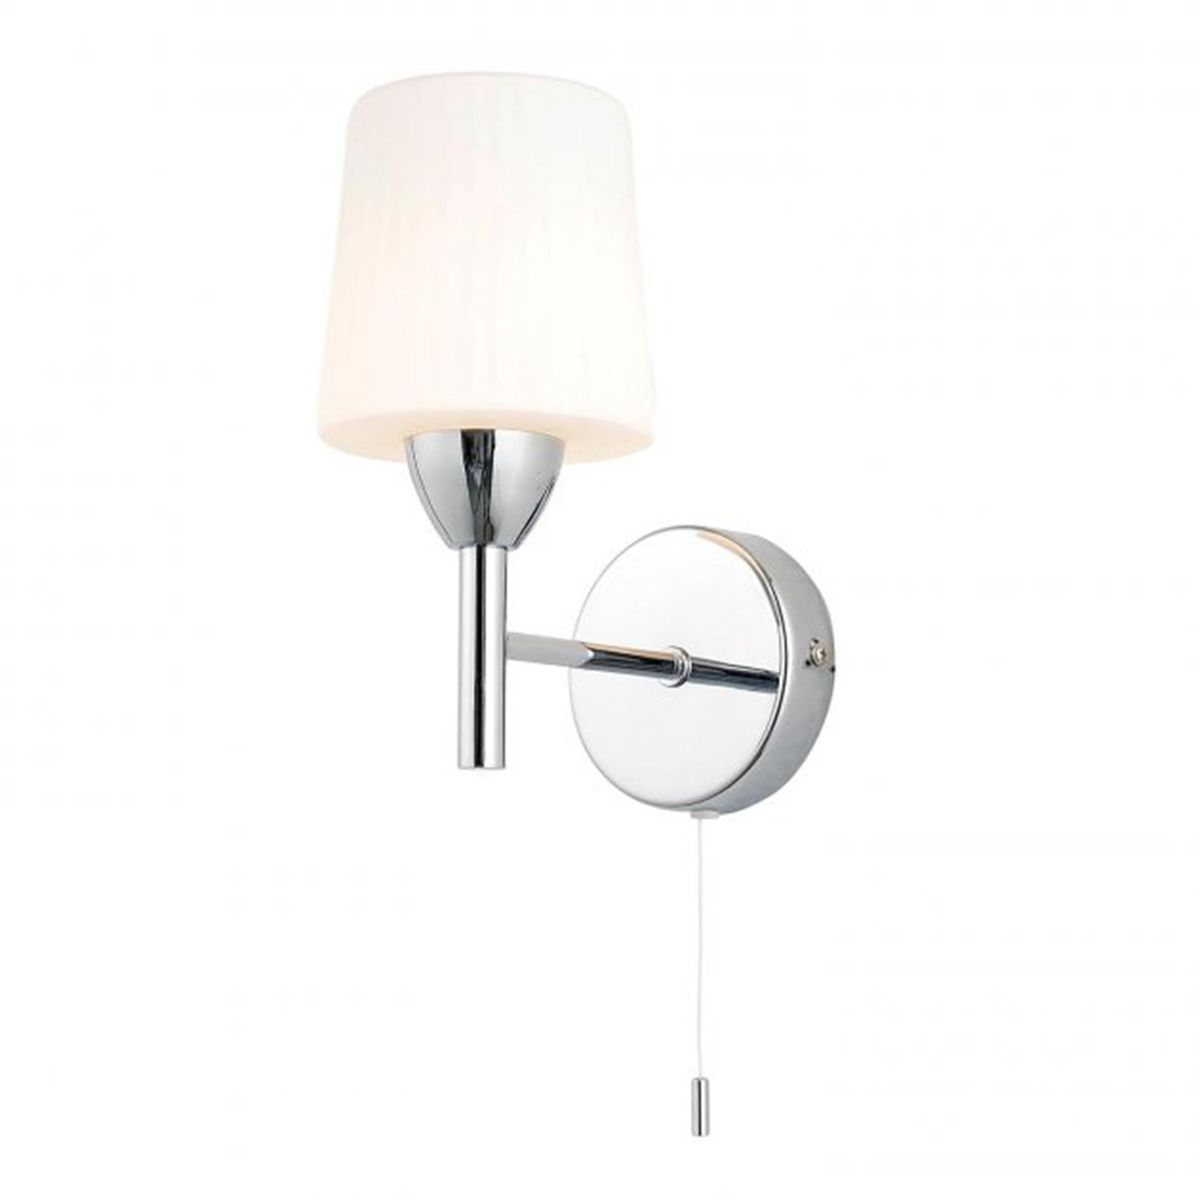 Frontline Chrome Aqua Wall Light with Pull Chord 100mm